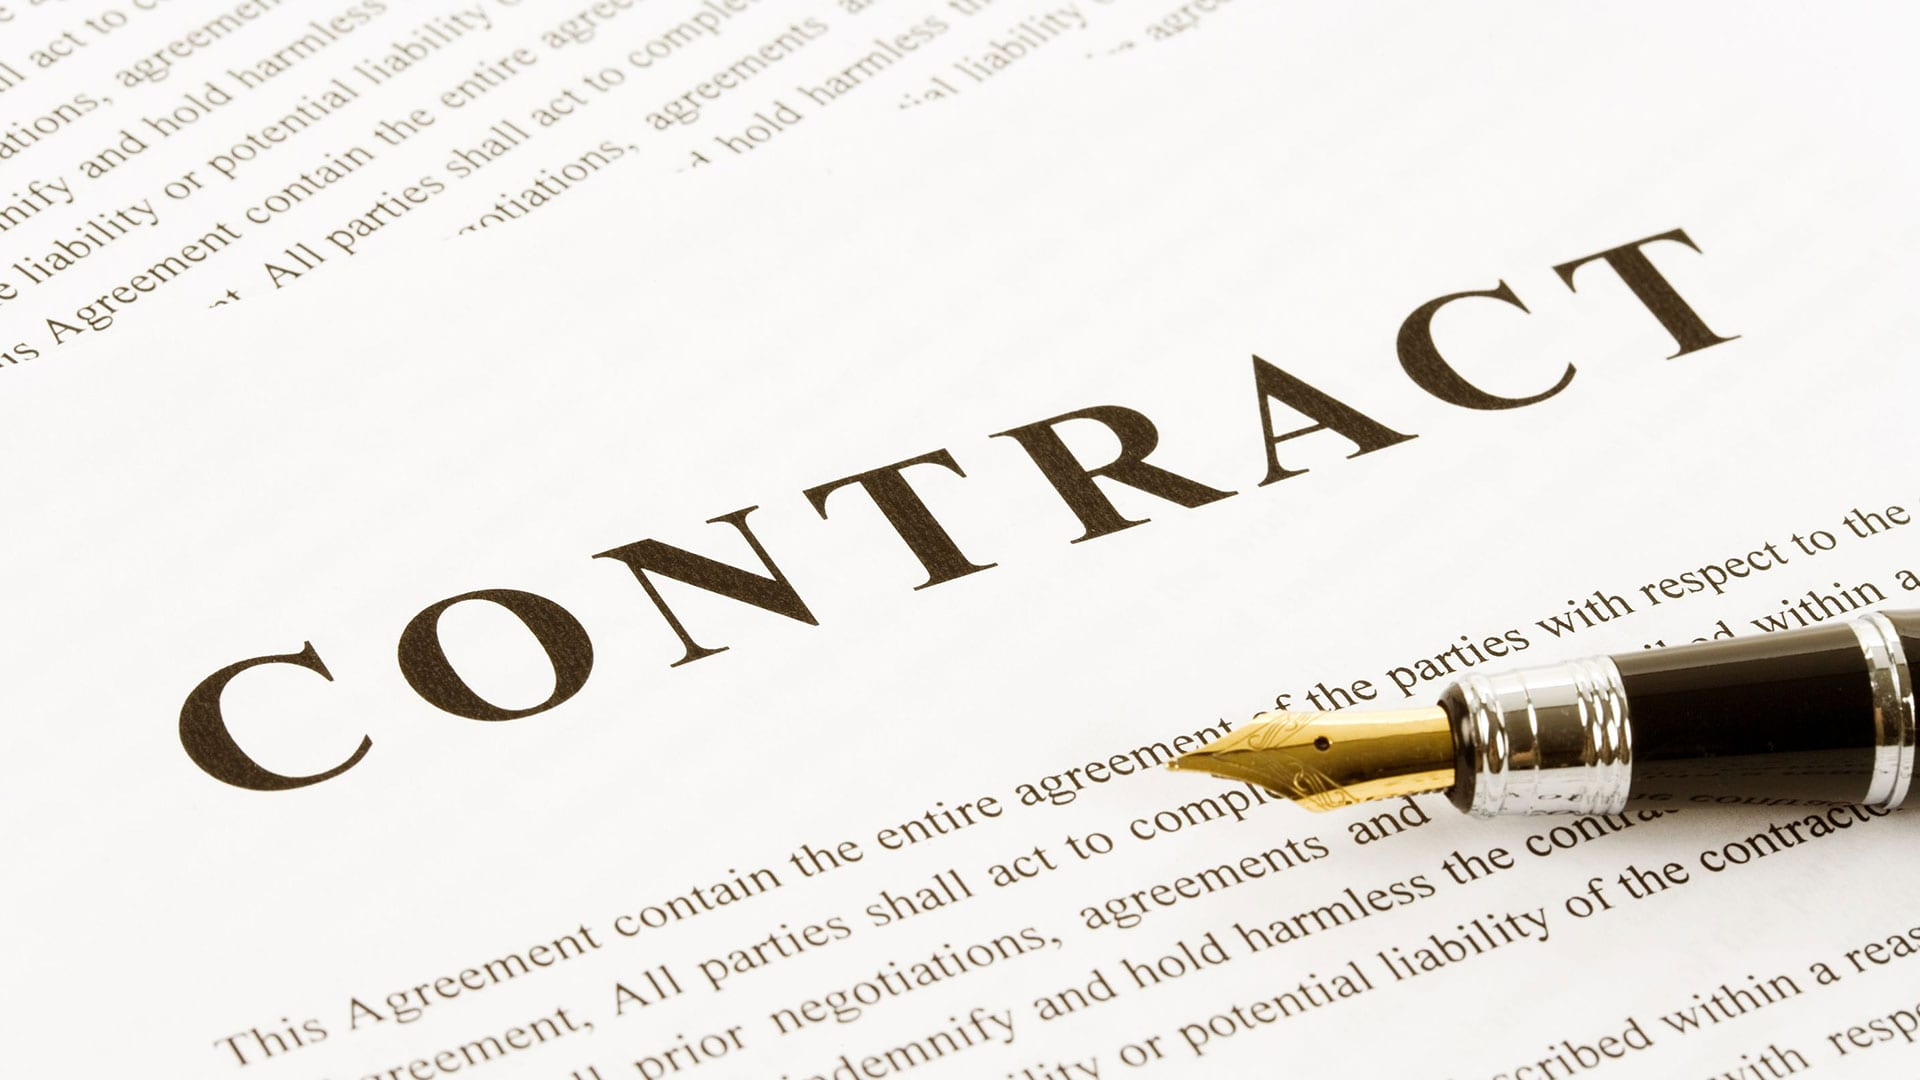 Contract Management by SIT Corporation